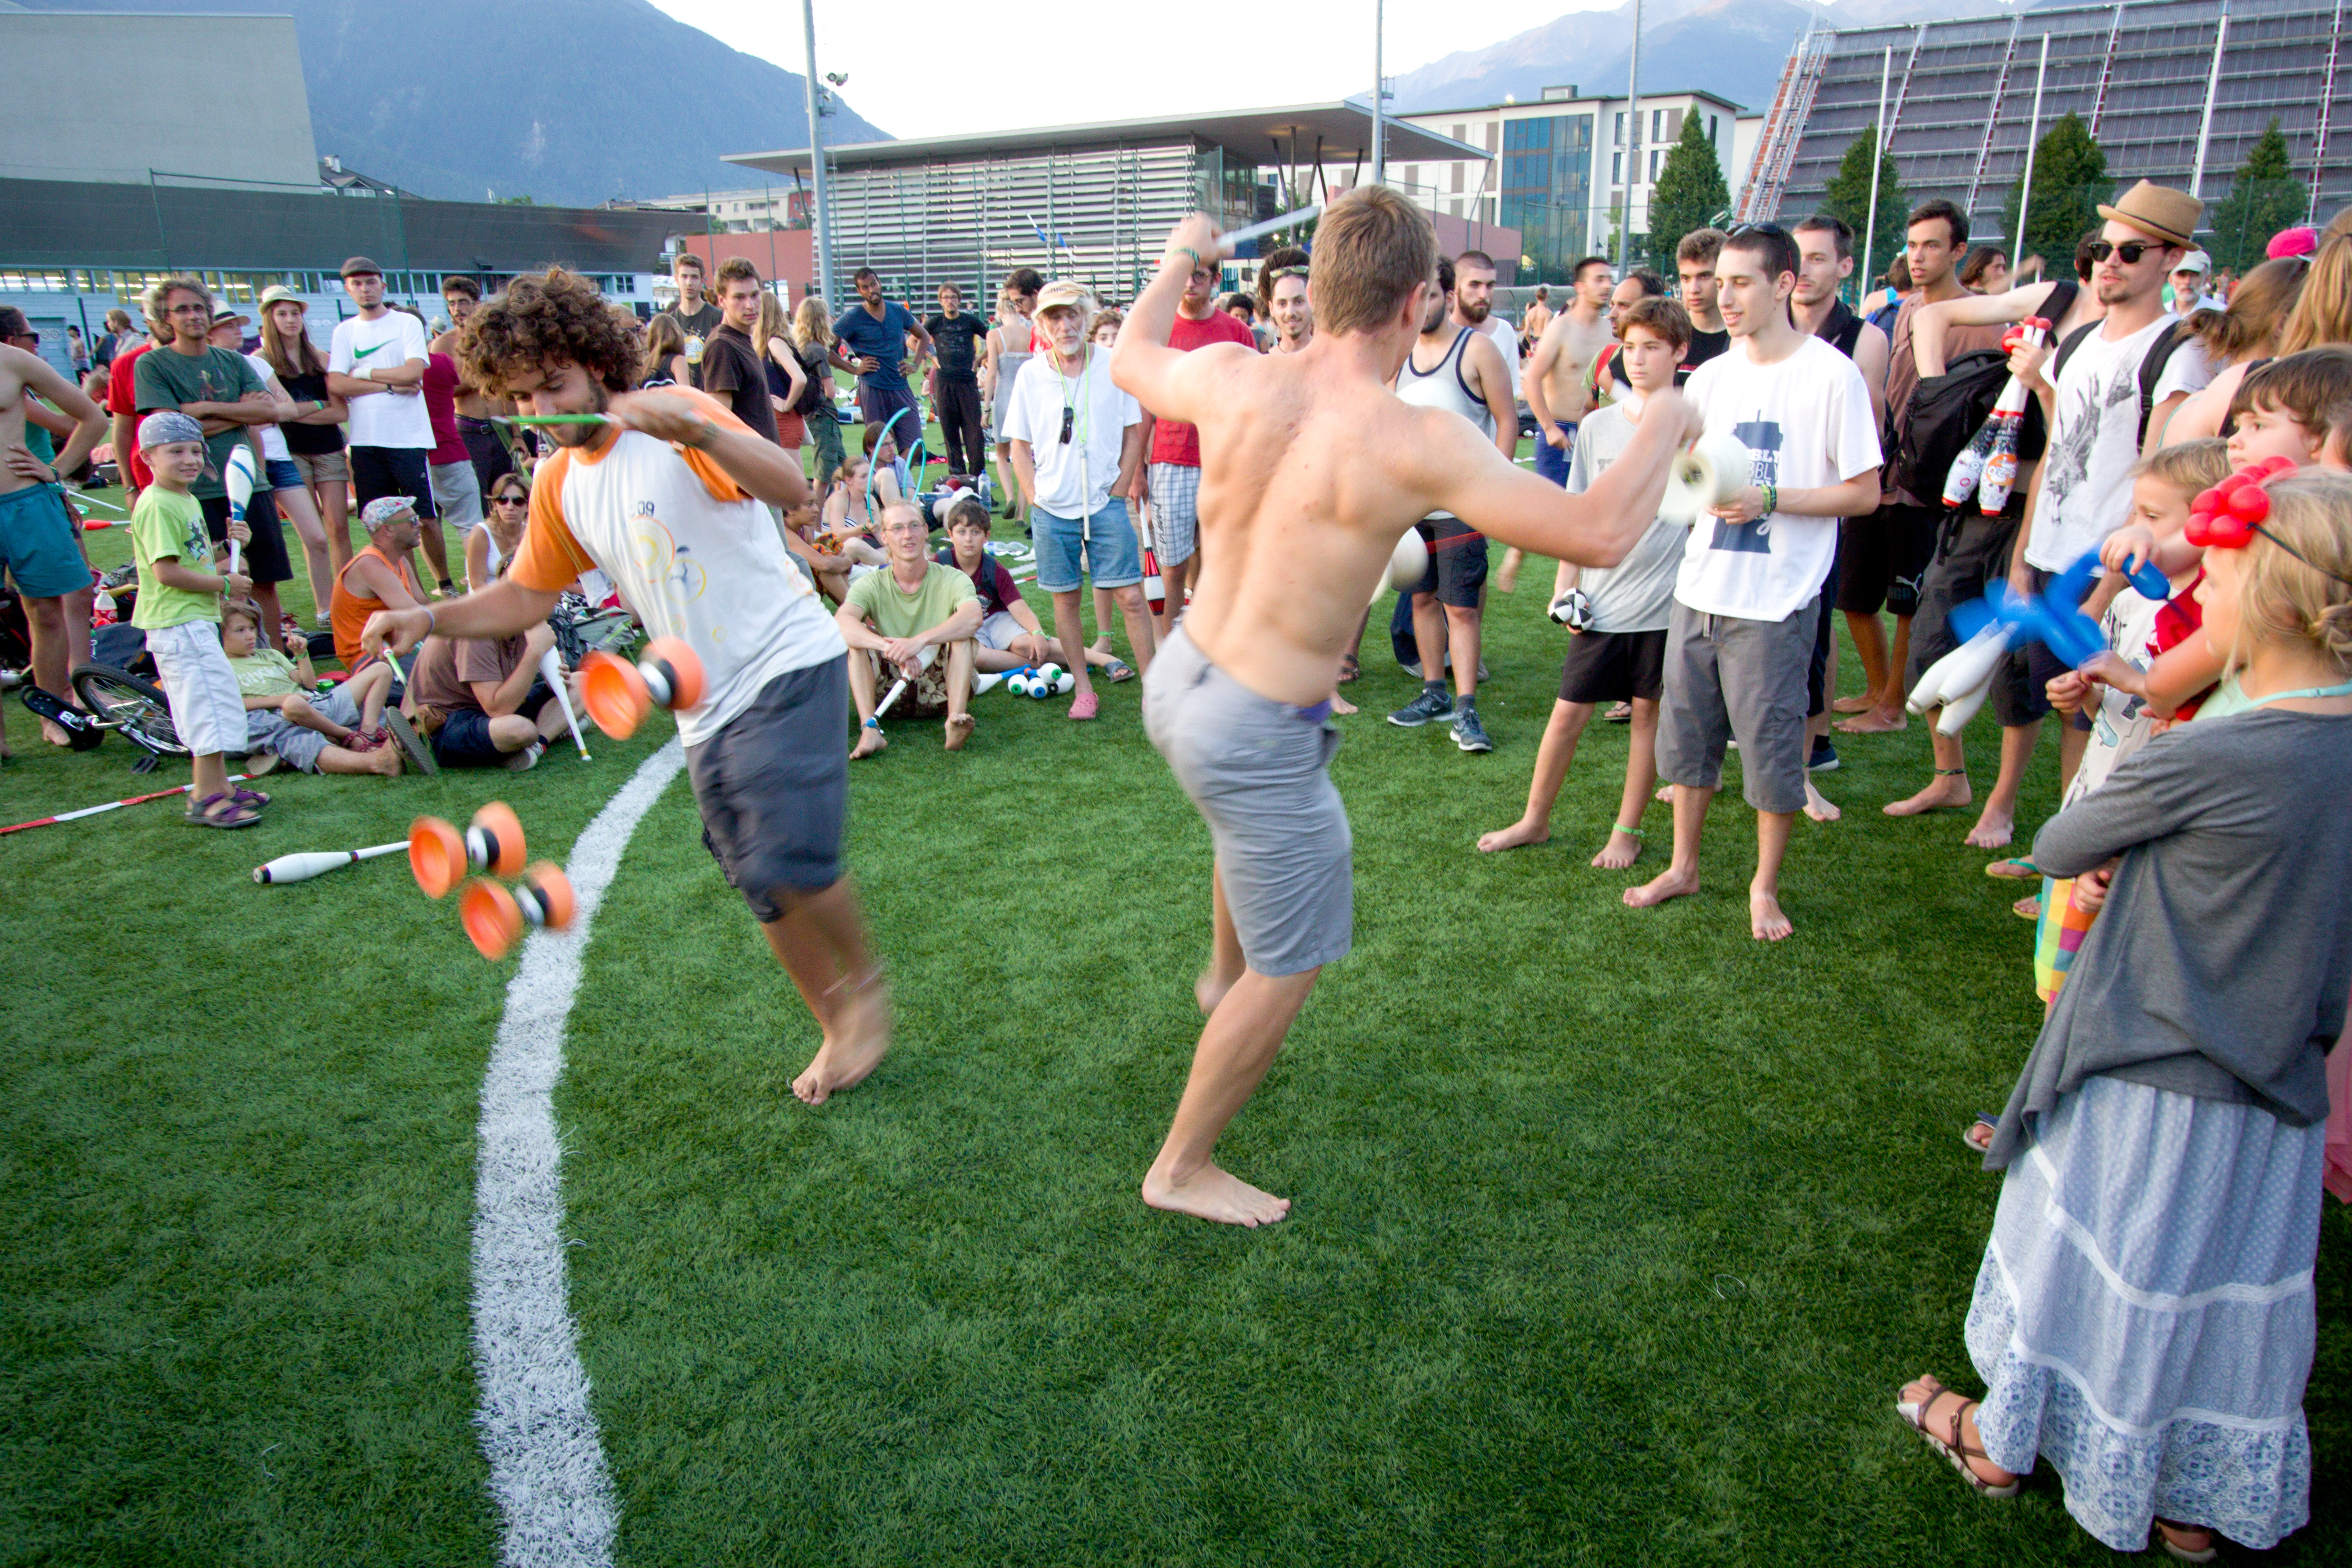 EJC 2015 Bruneck - Thursday August 6th and Friday August 7th: Games and late night juggling on the soccer field.